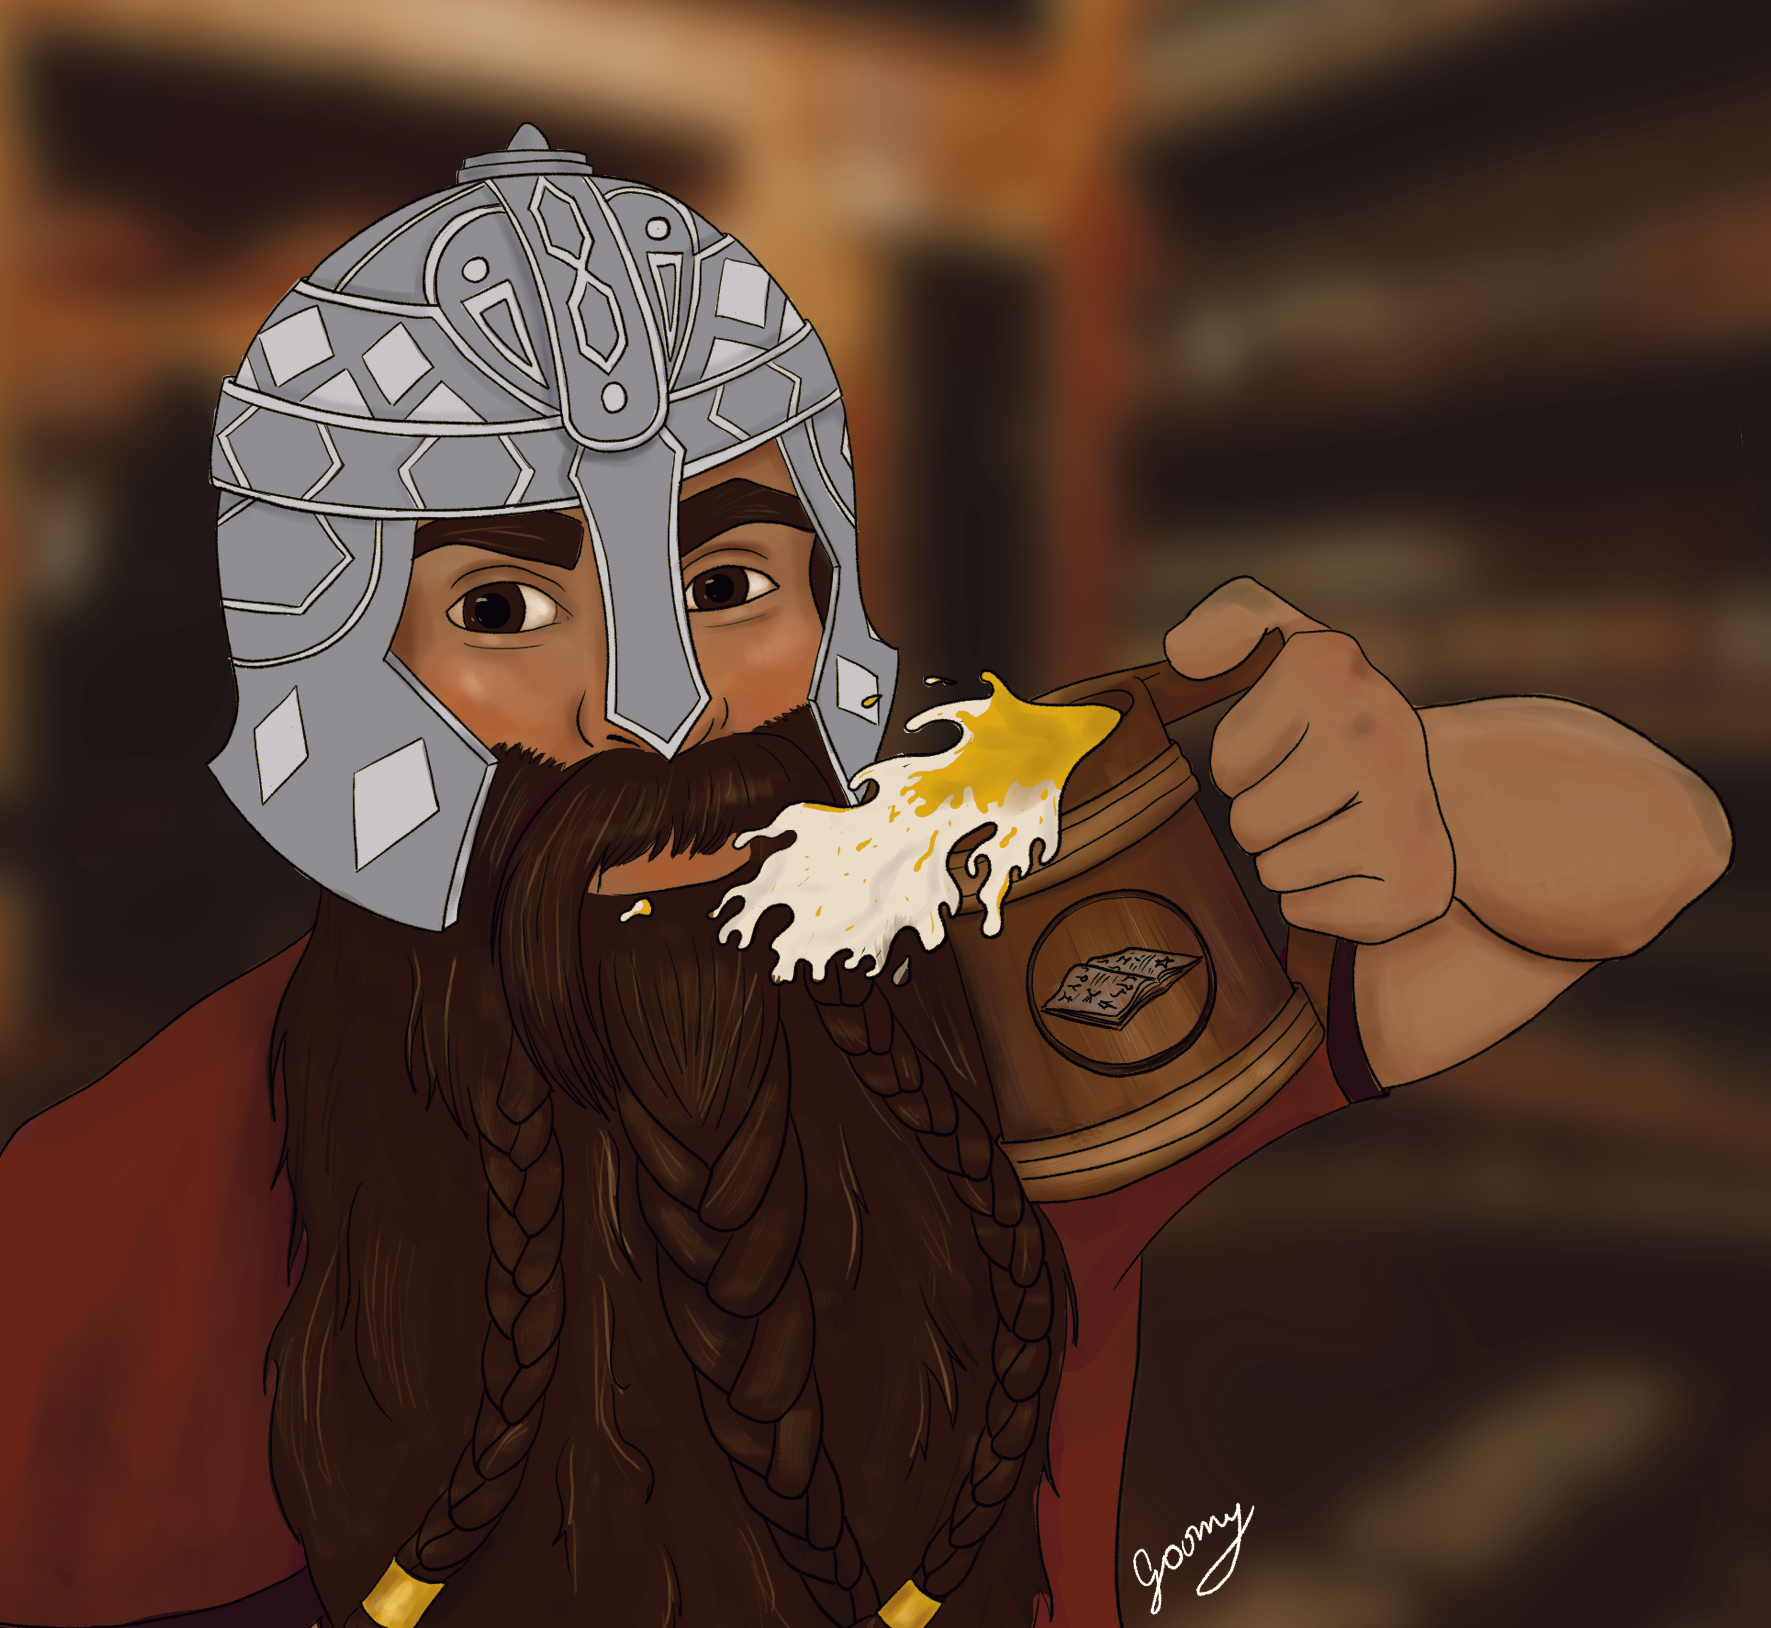 digital drawing of a long-bearded medieval dwarf character drinking beer while wearing a helmet